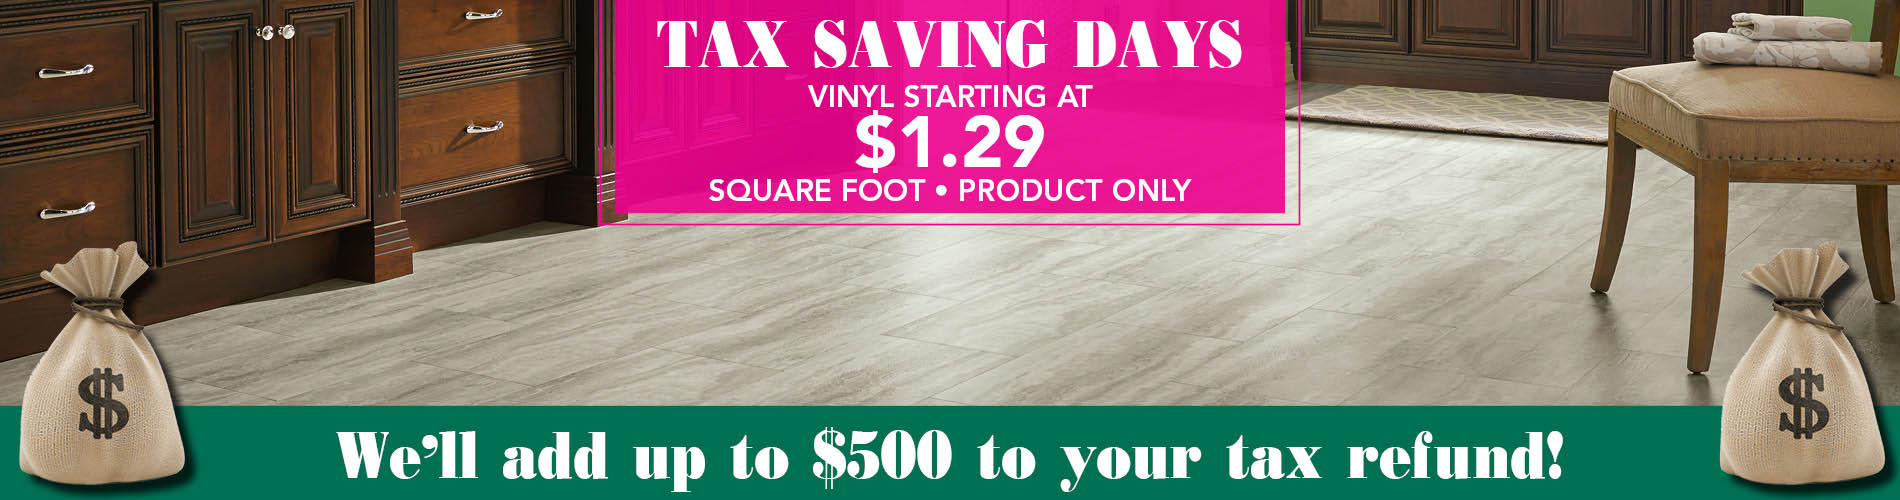 Vinyl starting at $1.29 sq.ft. - Product Only